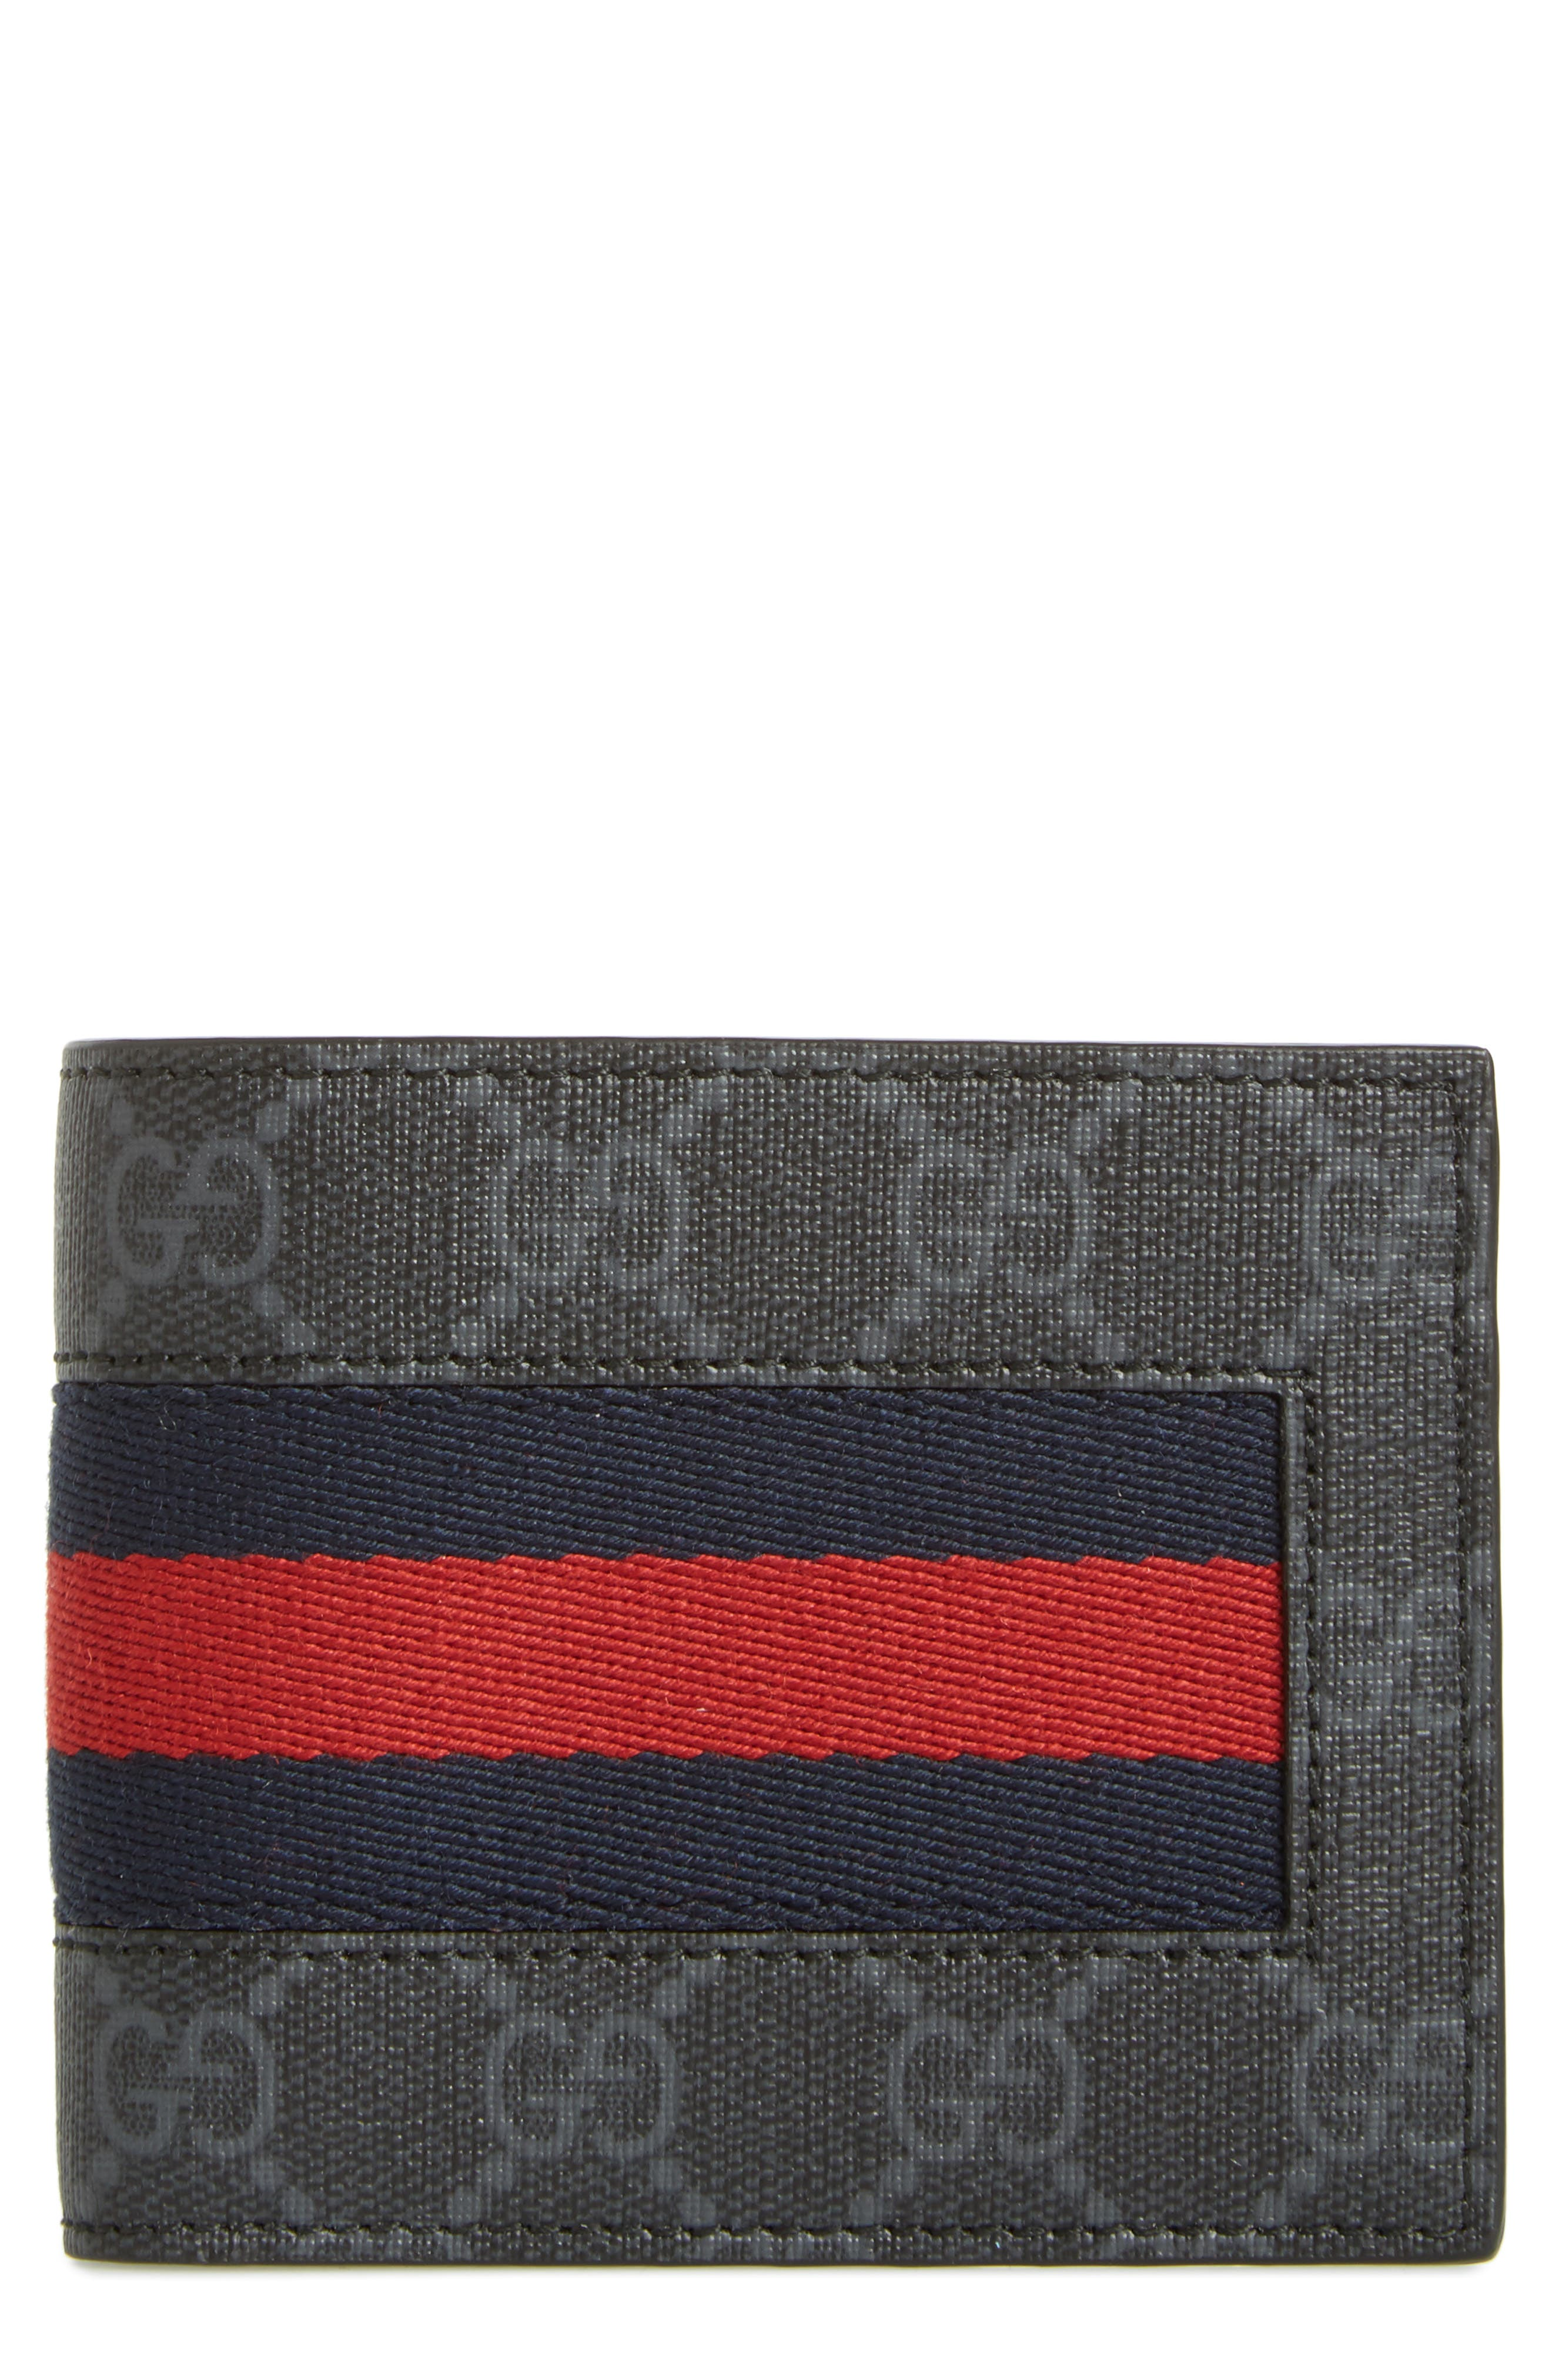 95aa28a101c Men s Gucci Wallets